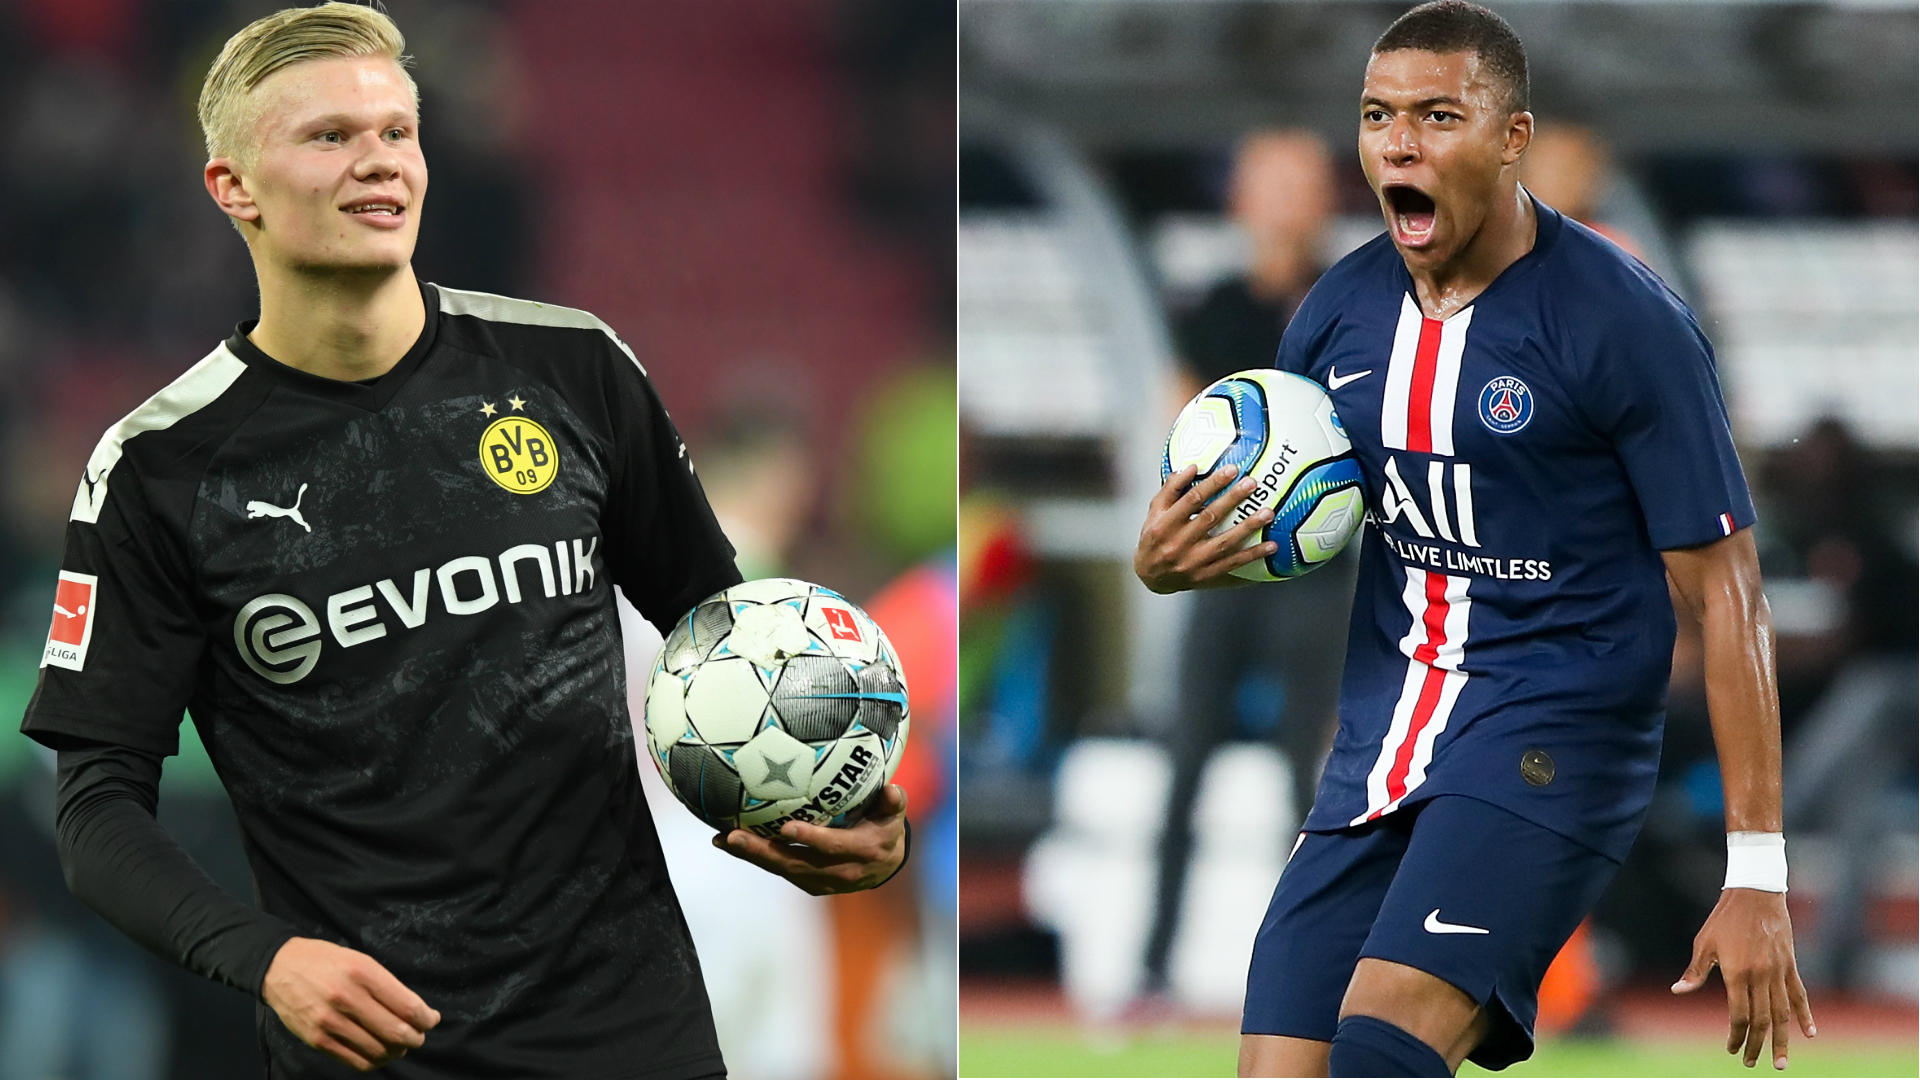 Rumour Has It: Real Madrid want Mbappe and Haaland in 2021, Juve join Man Utd in Jimenez race